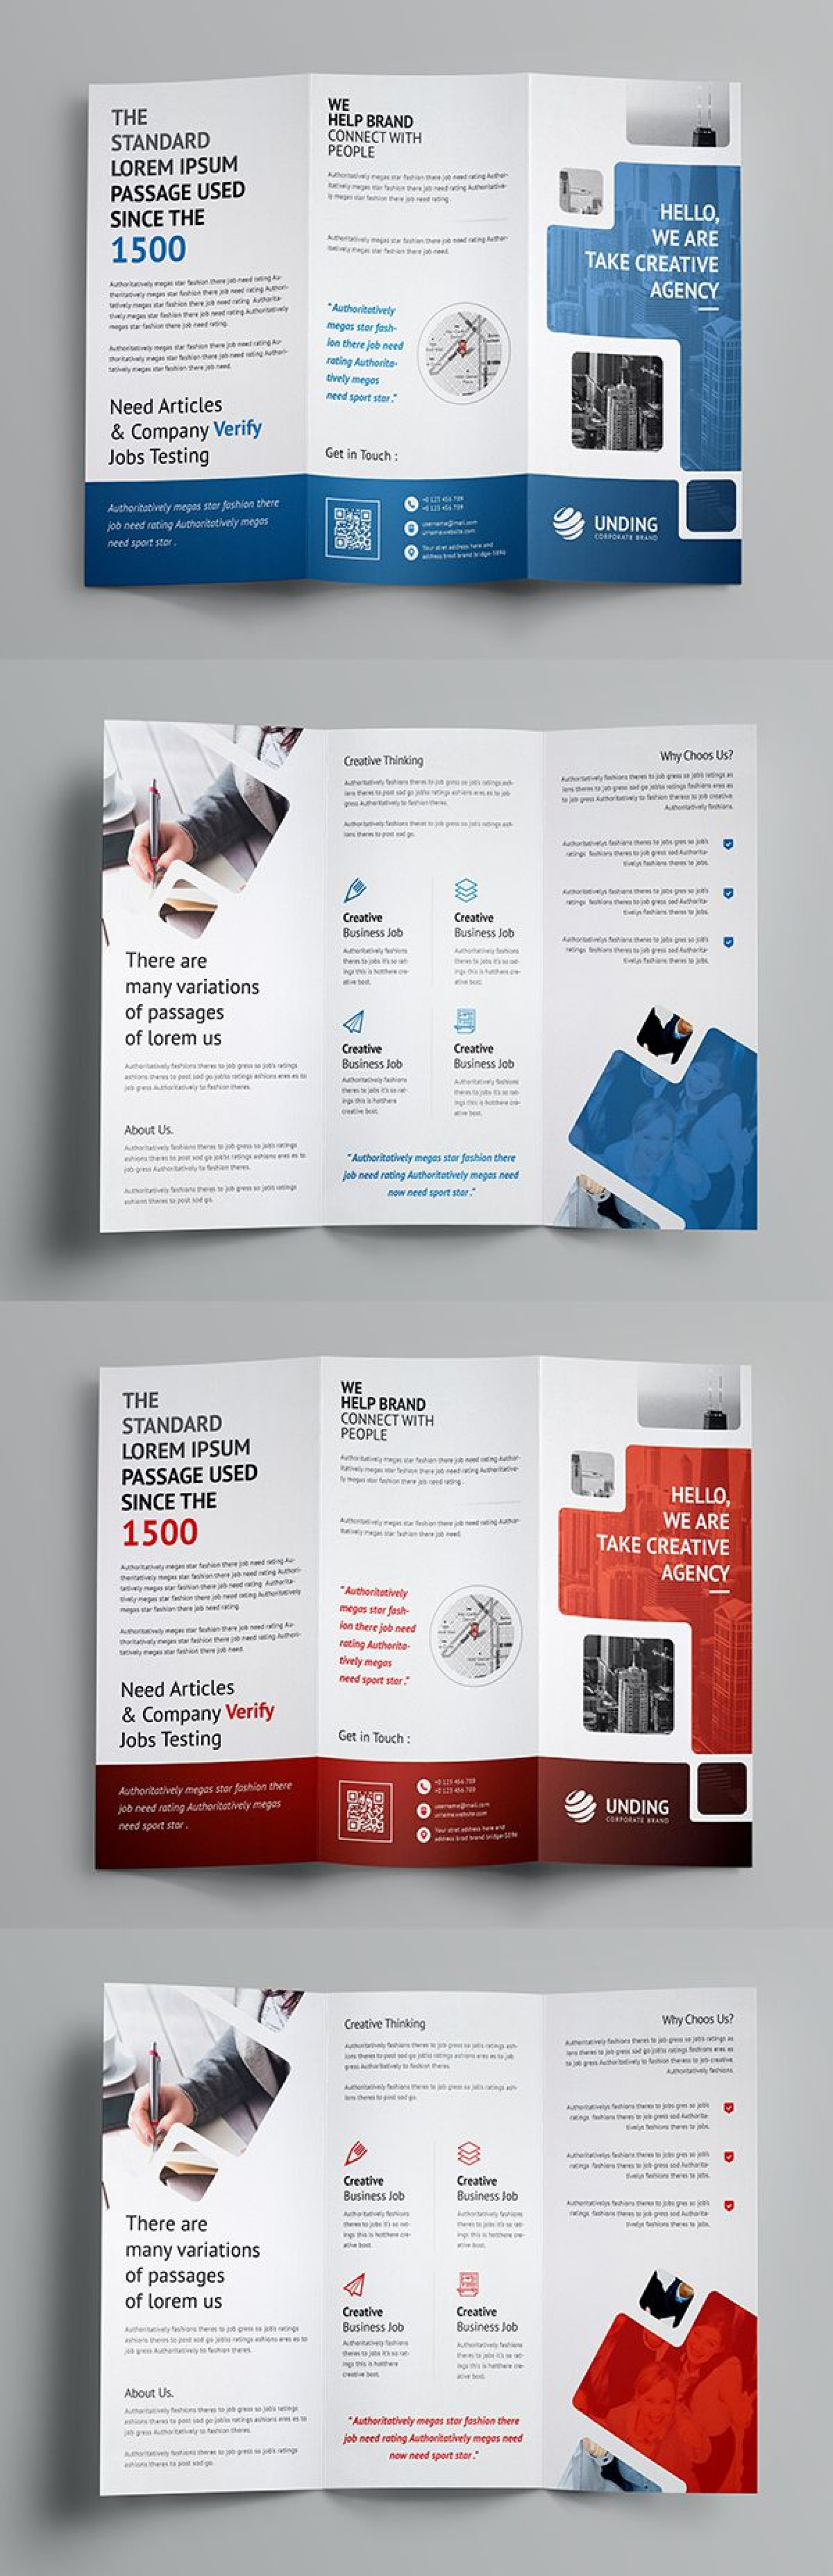 004 Remarkable Three Fold Brochure Template Word Free High Def  3 Download1920